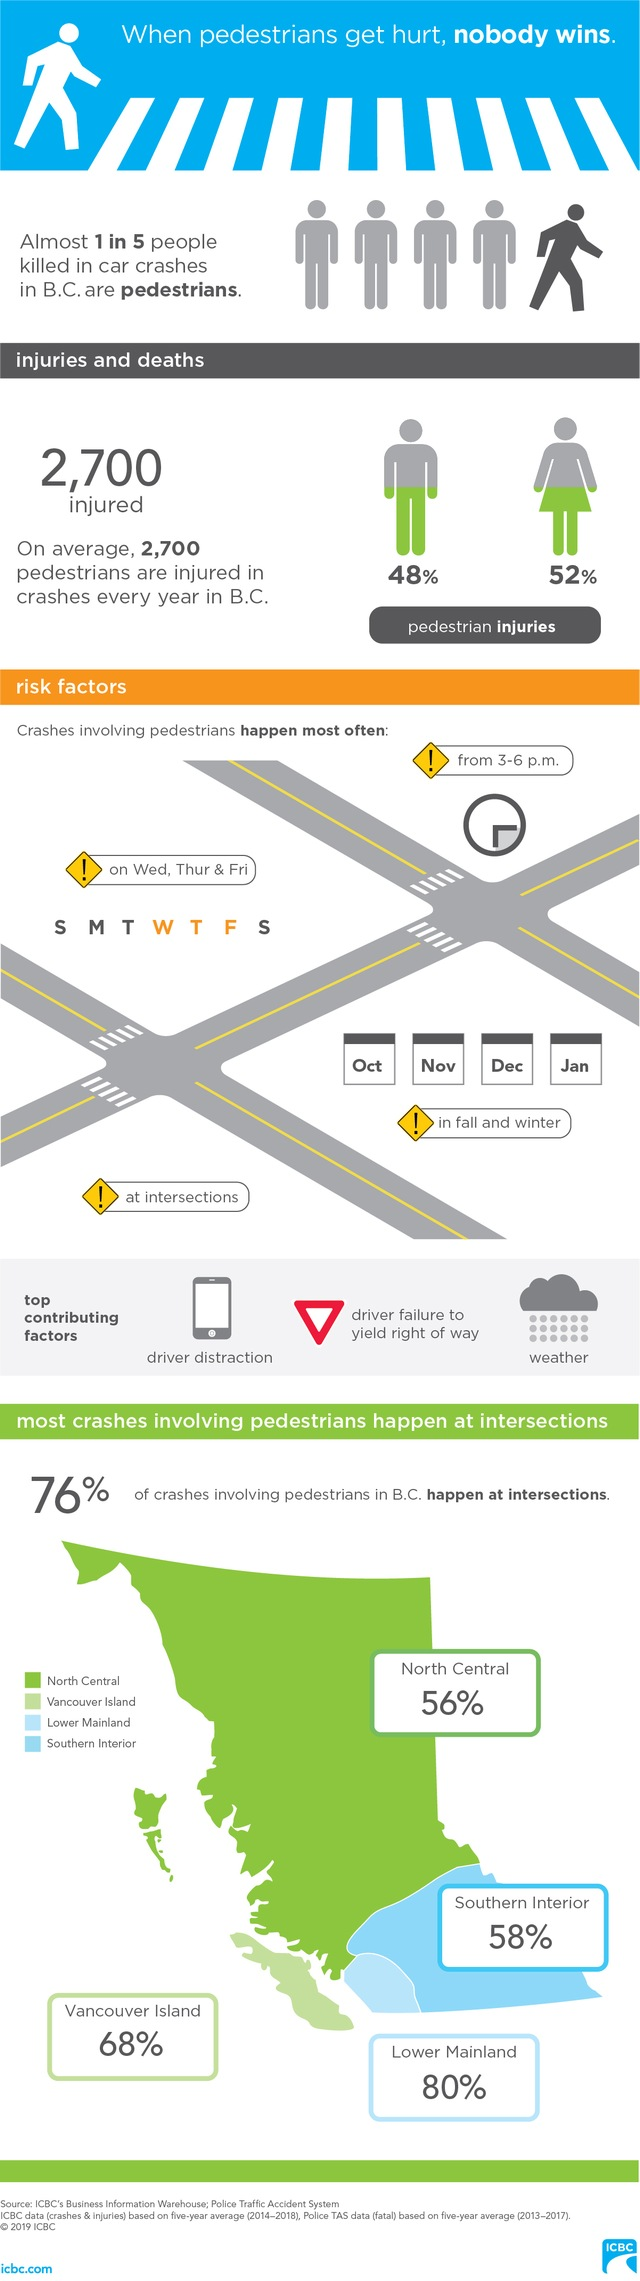 Facts behind pedestrian crashes (ICBC)